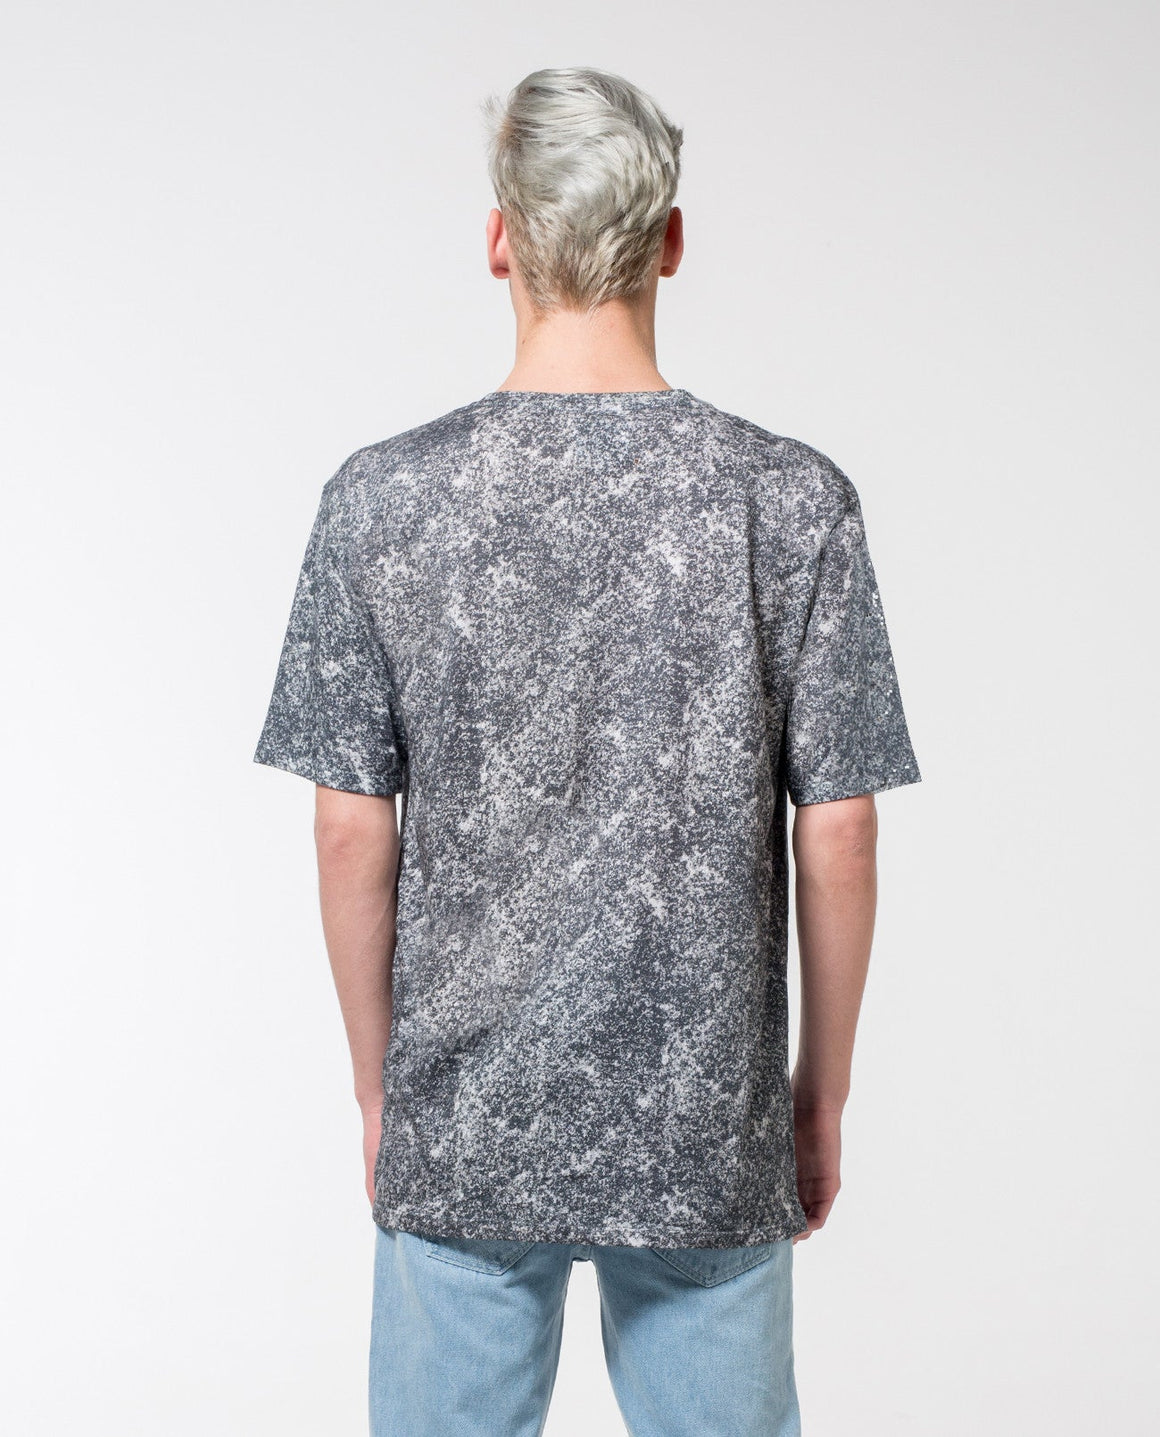 Texture Print T-Shirt - Local Pattern  - 1